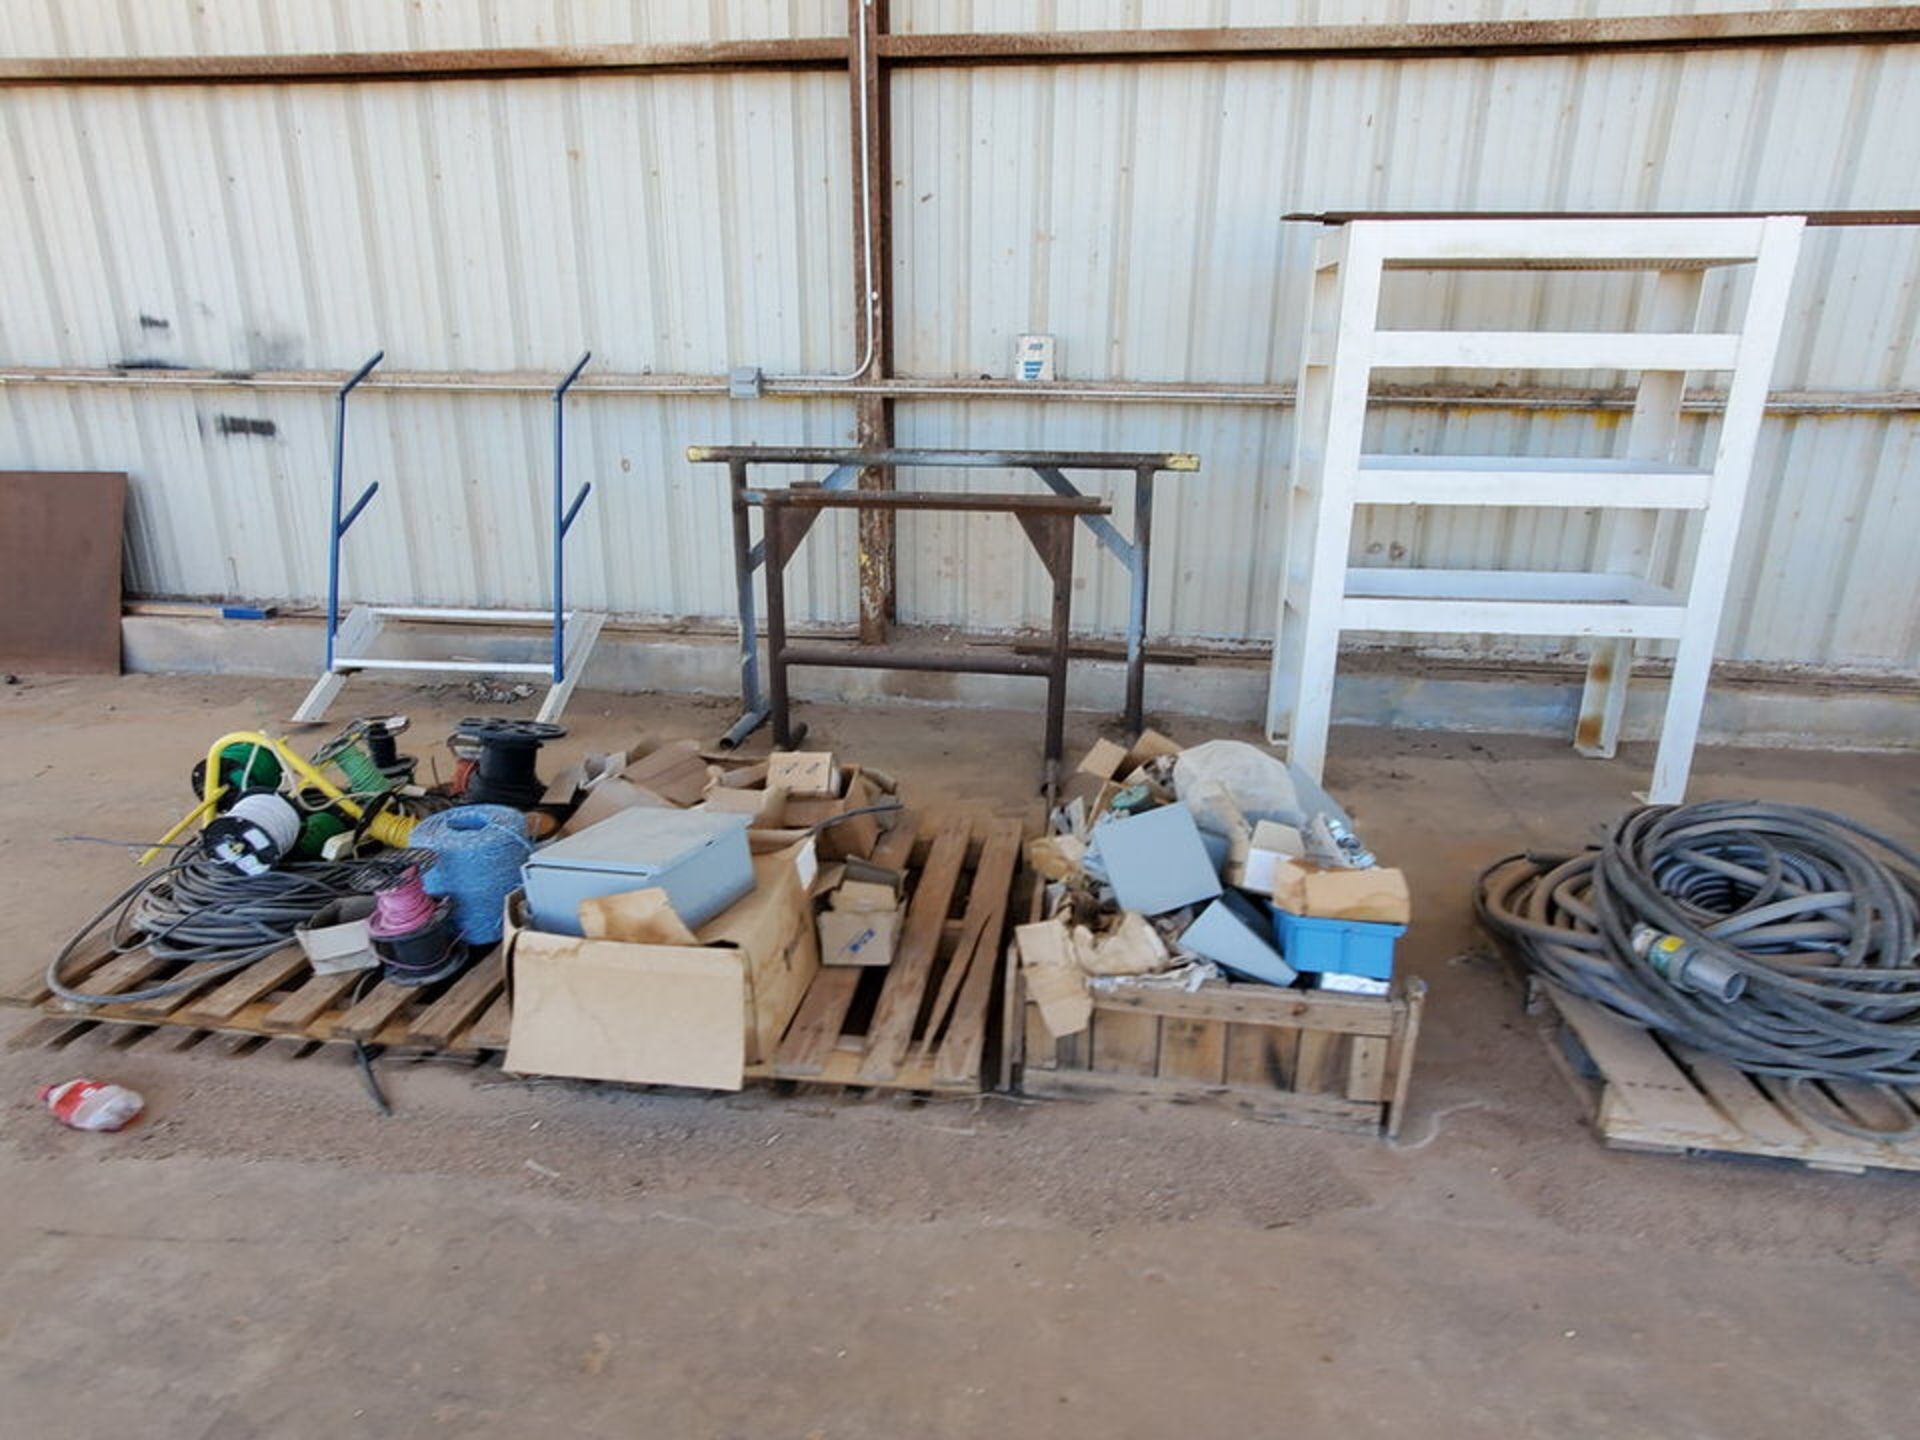 Misc. Matl. To Include But Not Limited To: Lift Basket, Welding Table, Sheet Metal, Ele Wire, Rope - Image 8 of 13